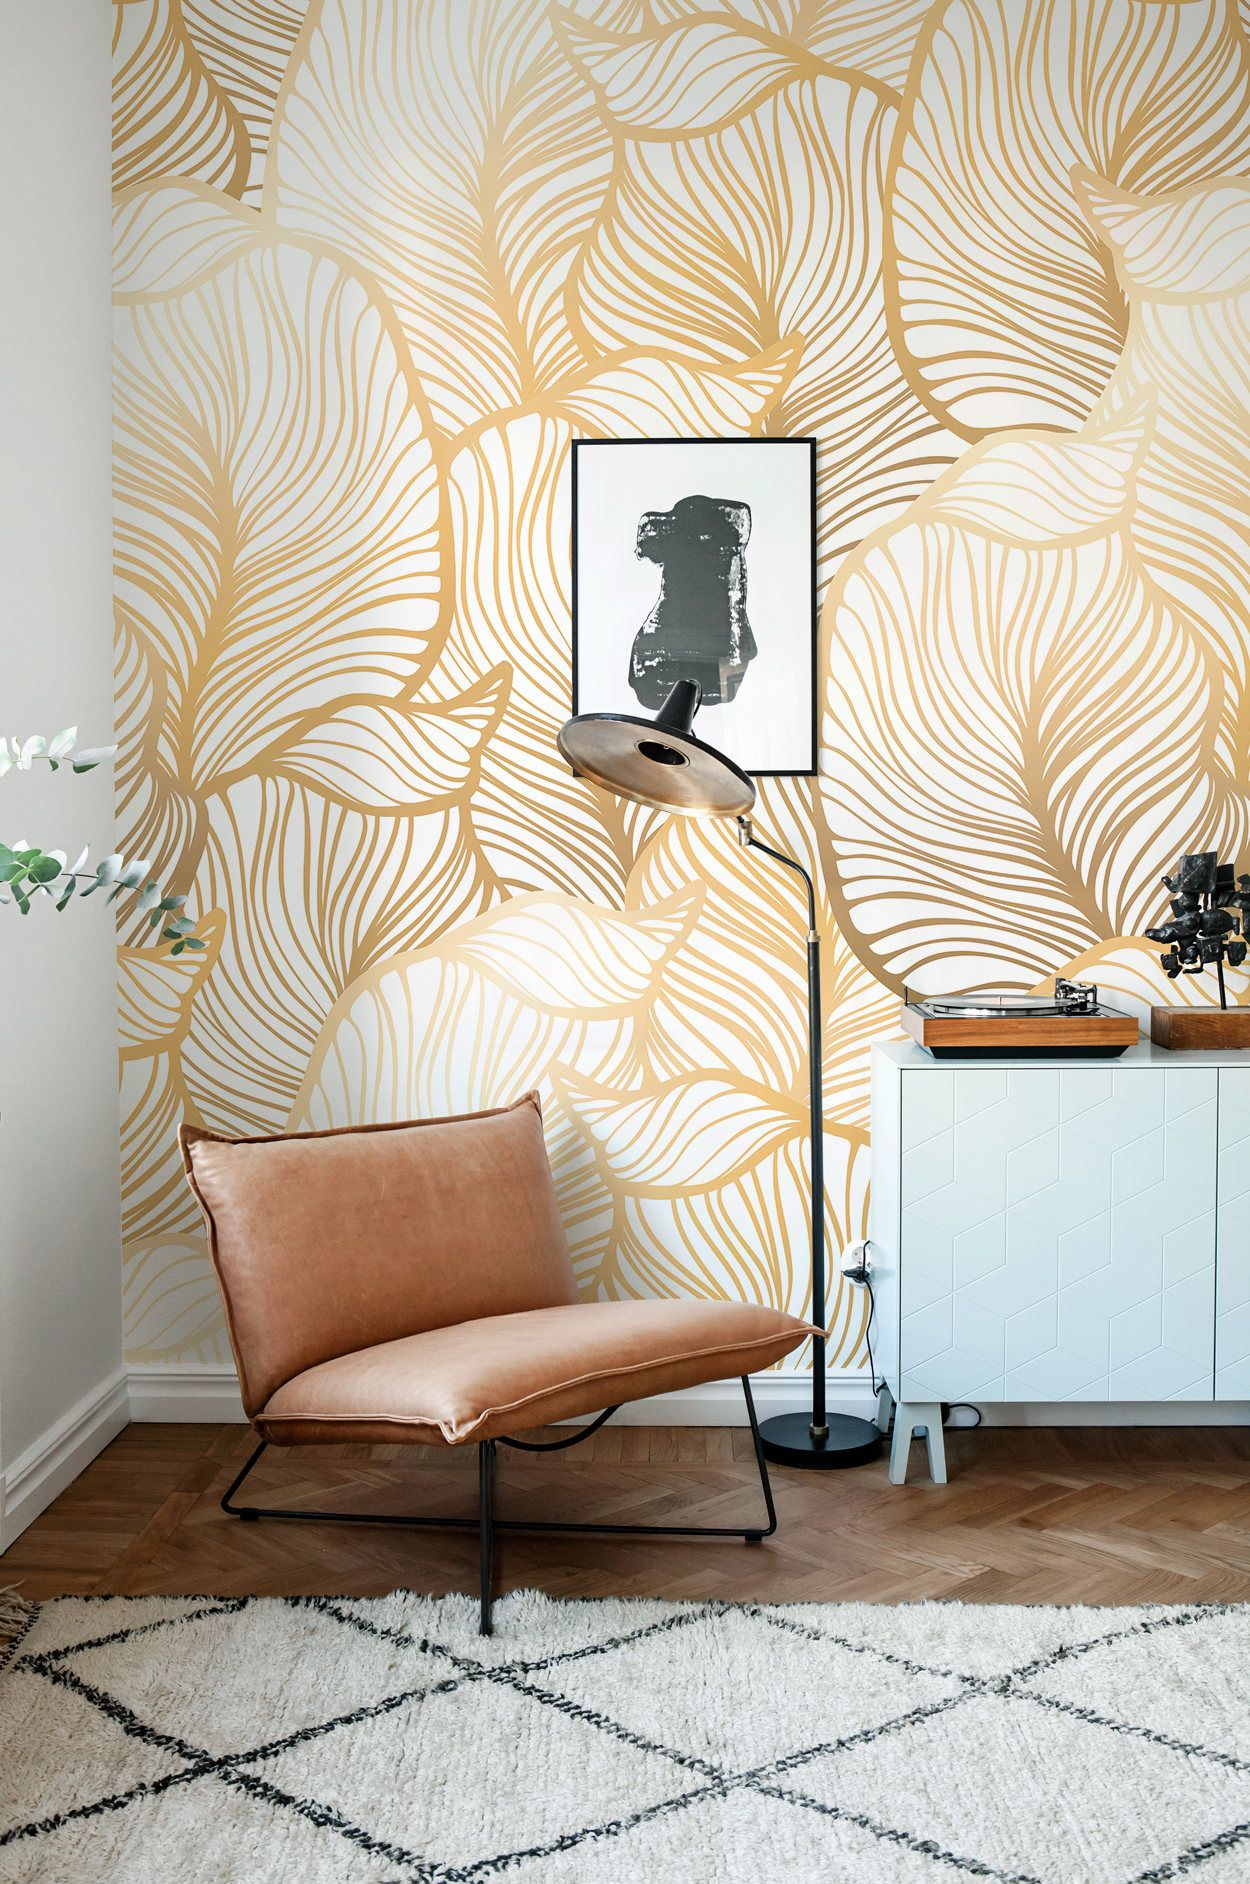 Solid Gold Leaf Wallpaper, Exotic Leaves Wallpaper, Large Leaf Wall